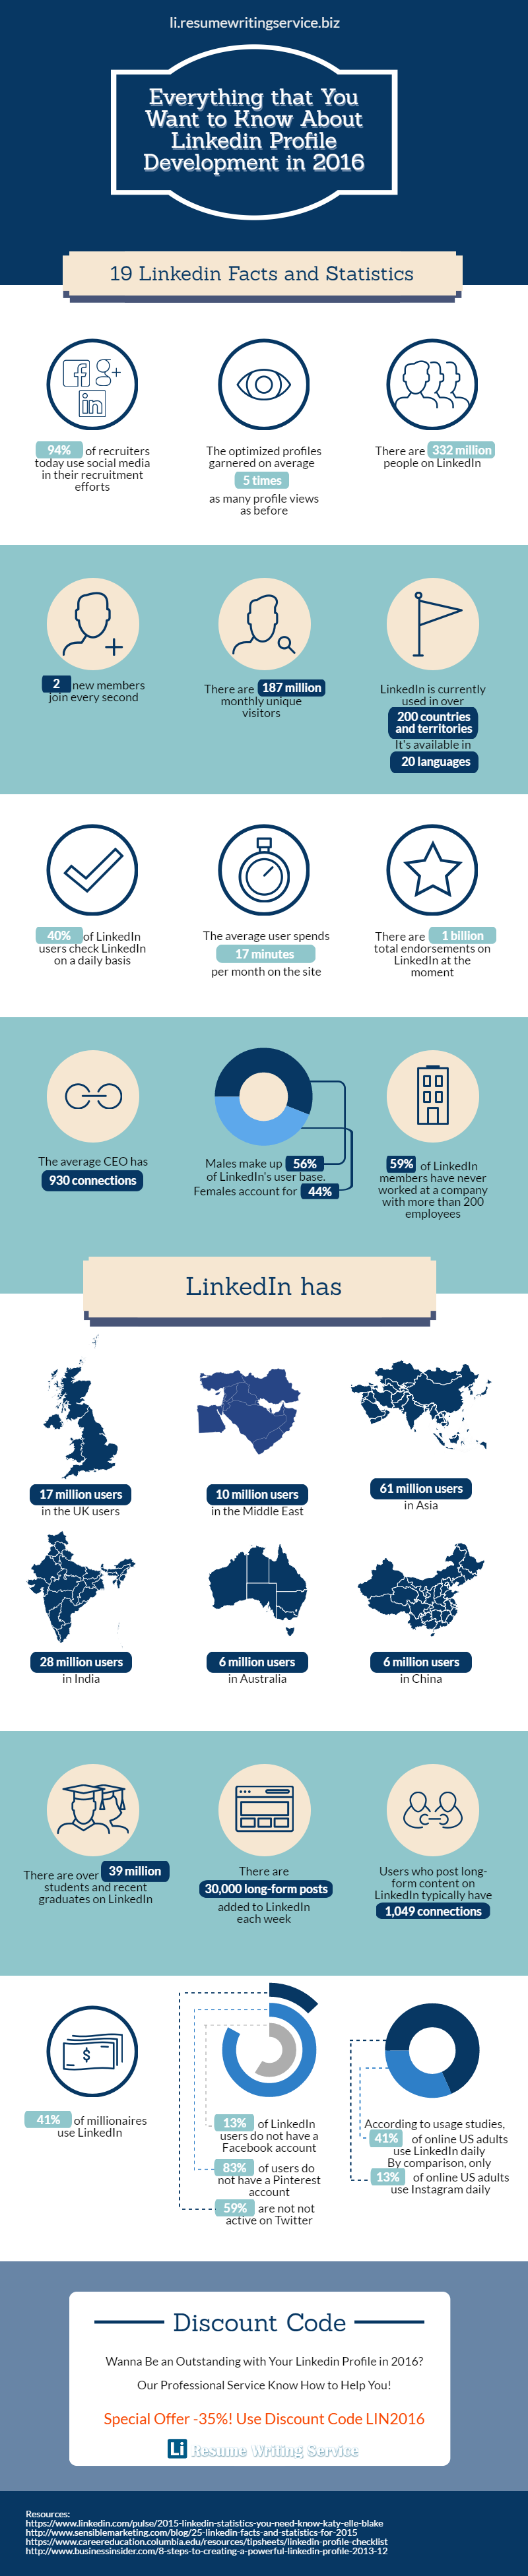 Everything that You Want to Know About Linkedin Profile Development in 2016